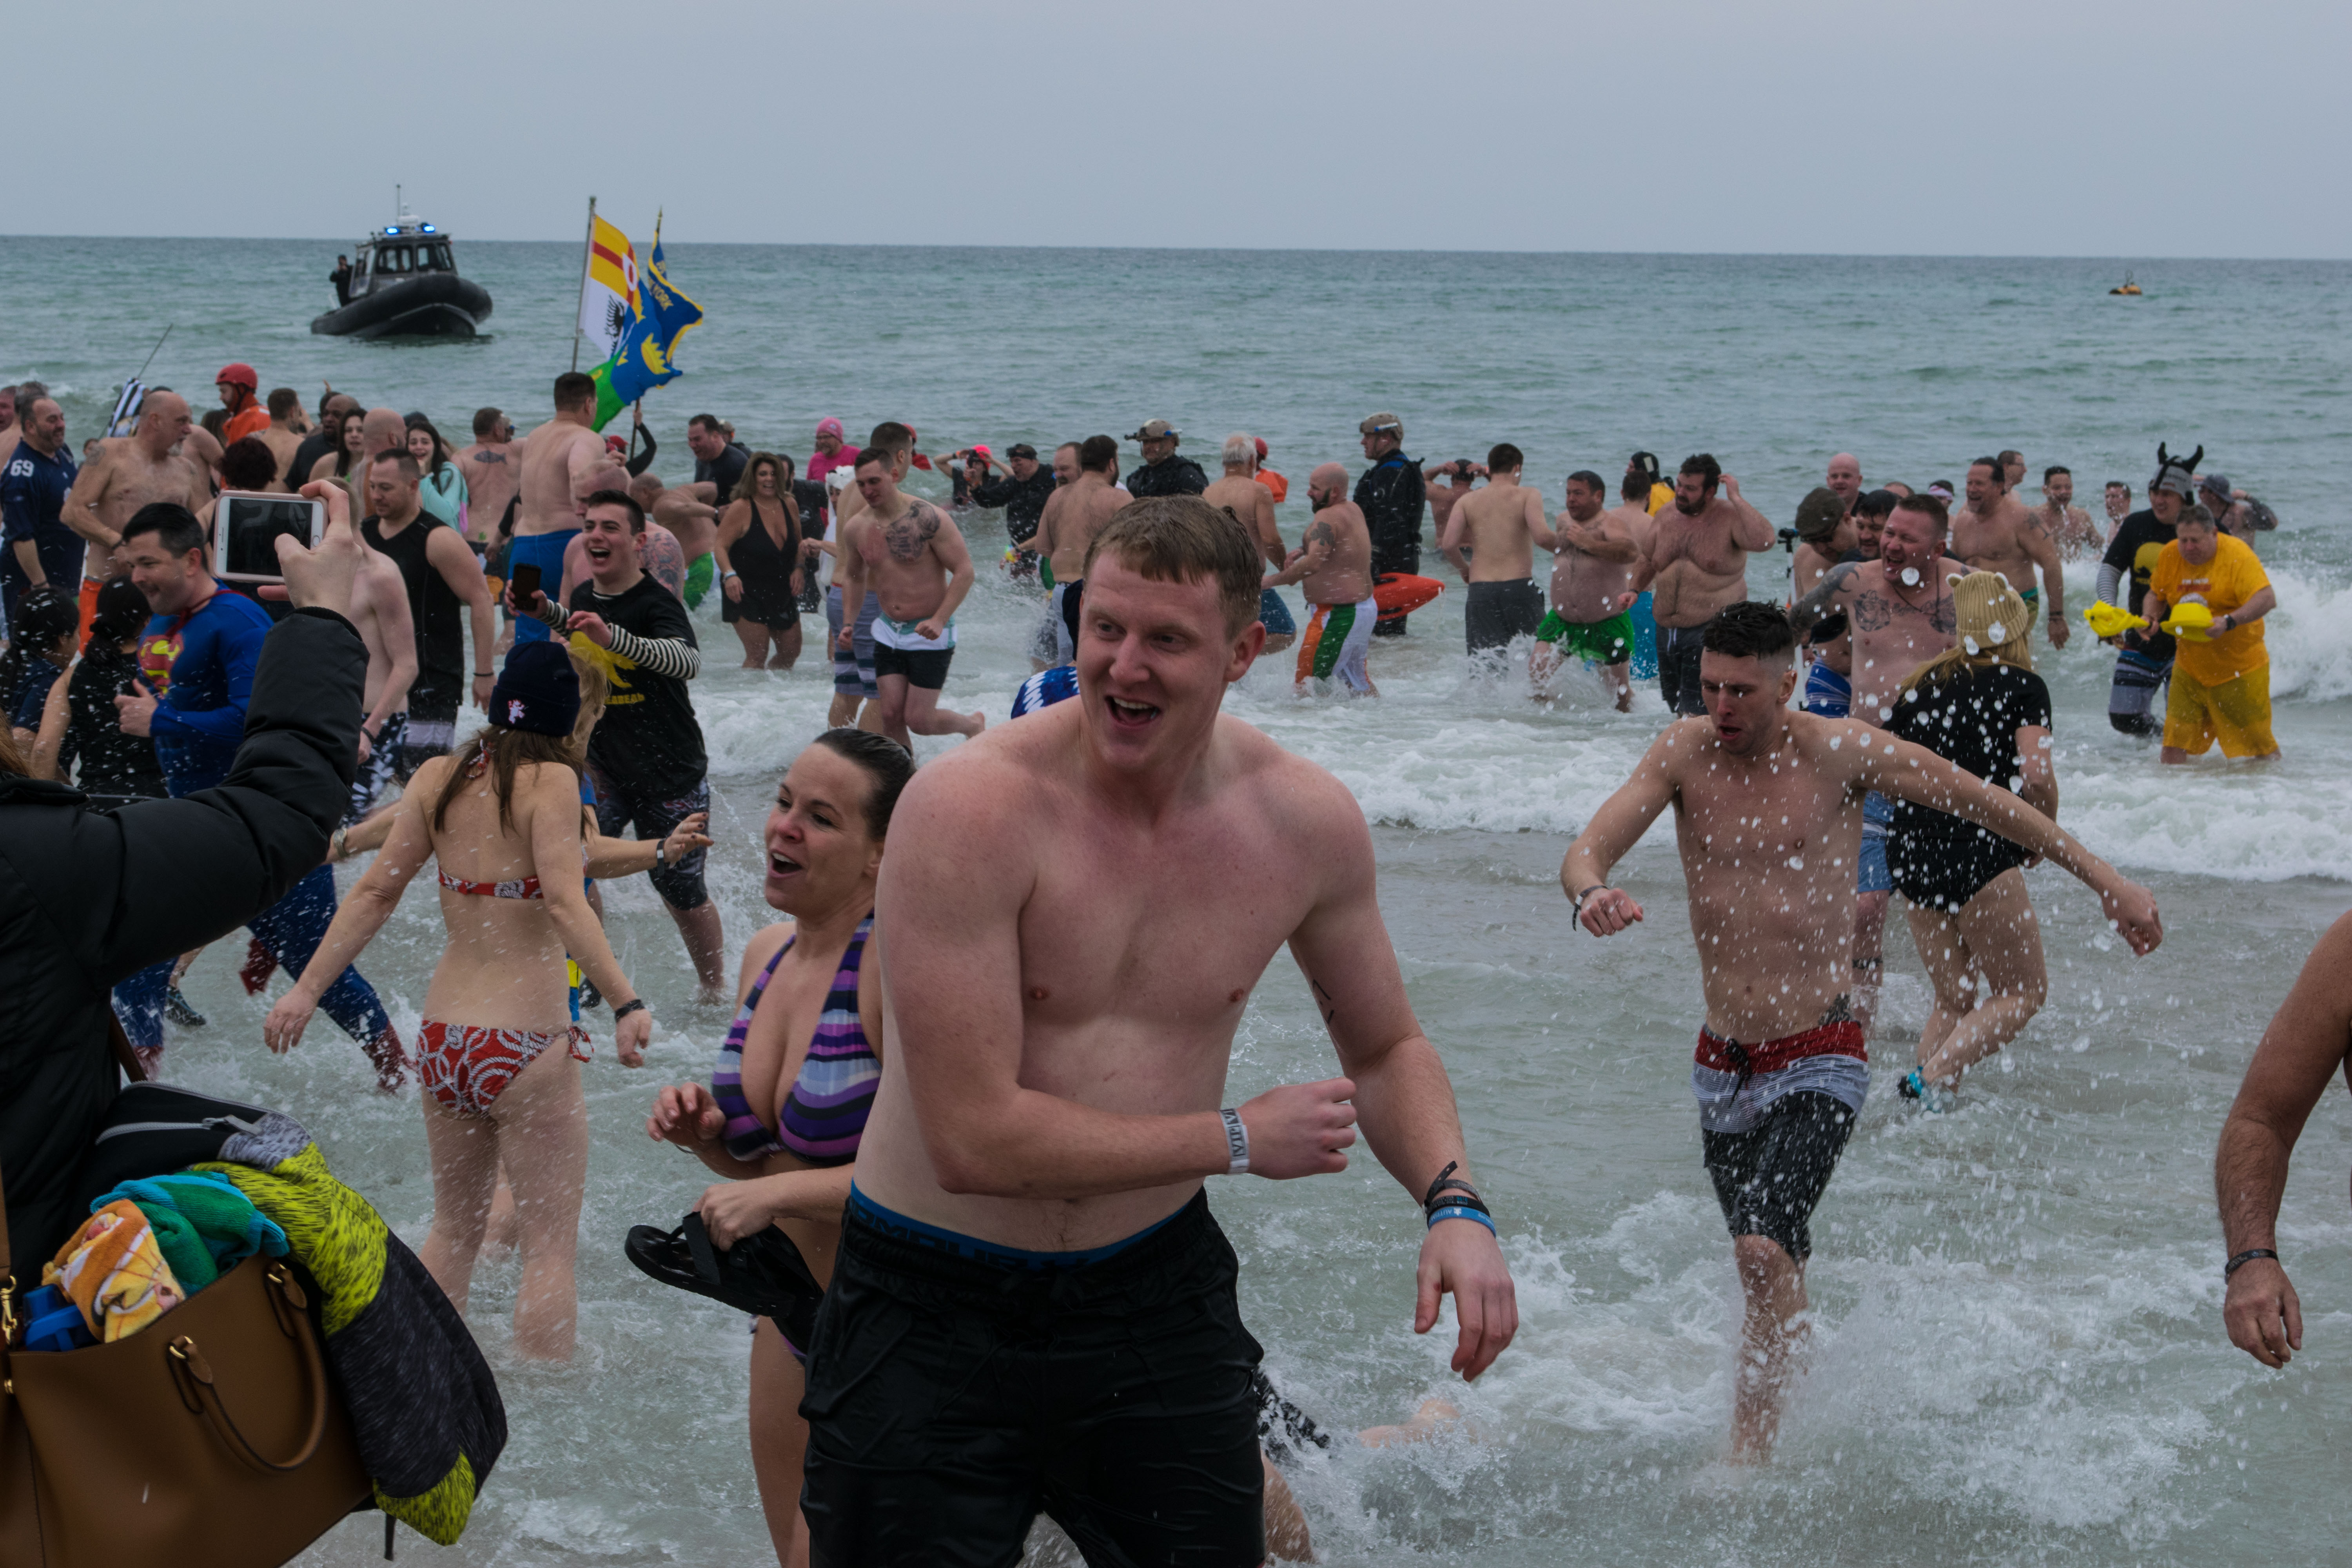 Participants in the 2019 Seaside Heights Polar Plunge. (Photo: Daniel Nee)